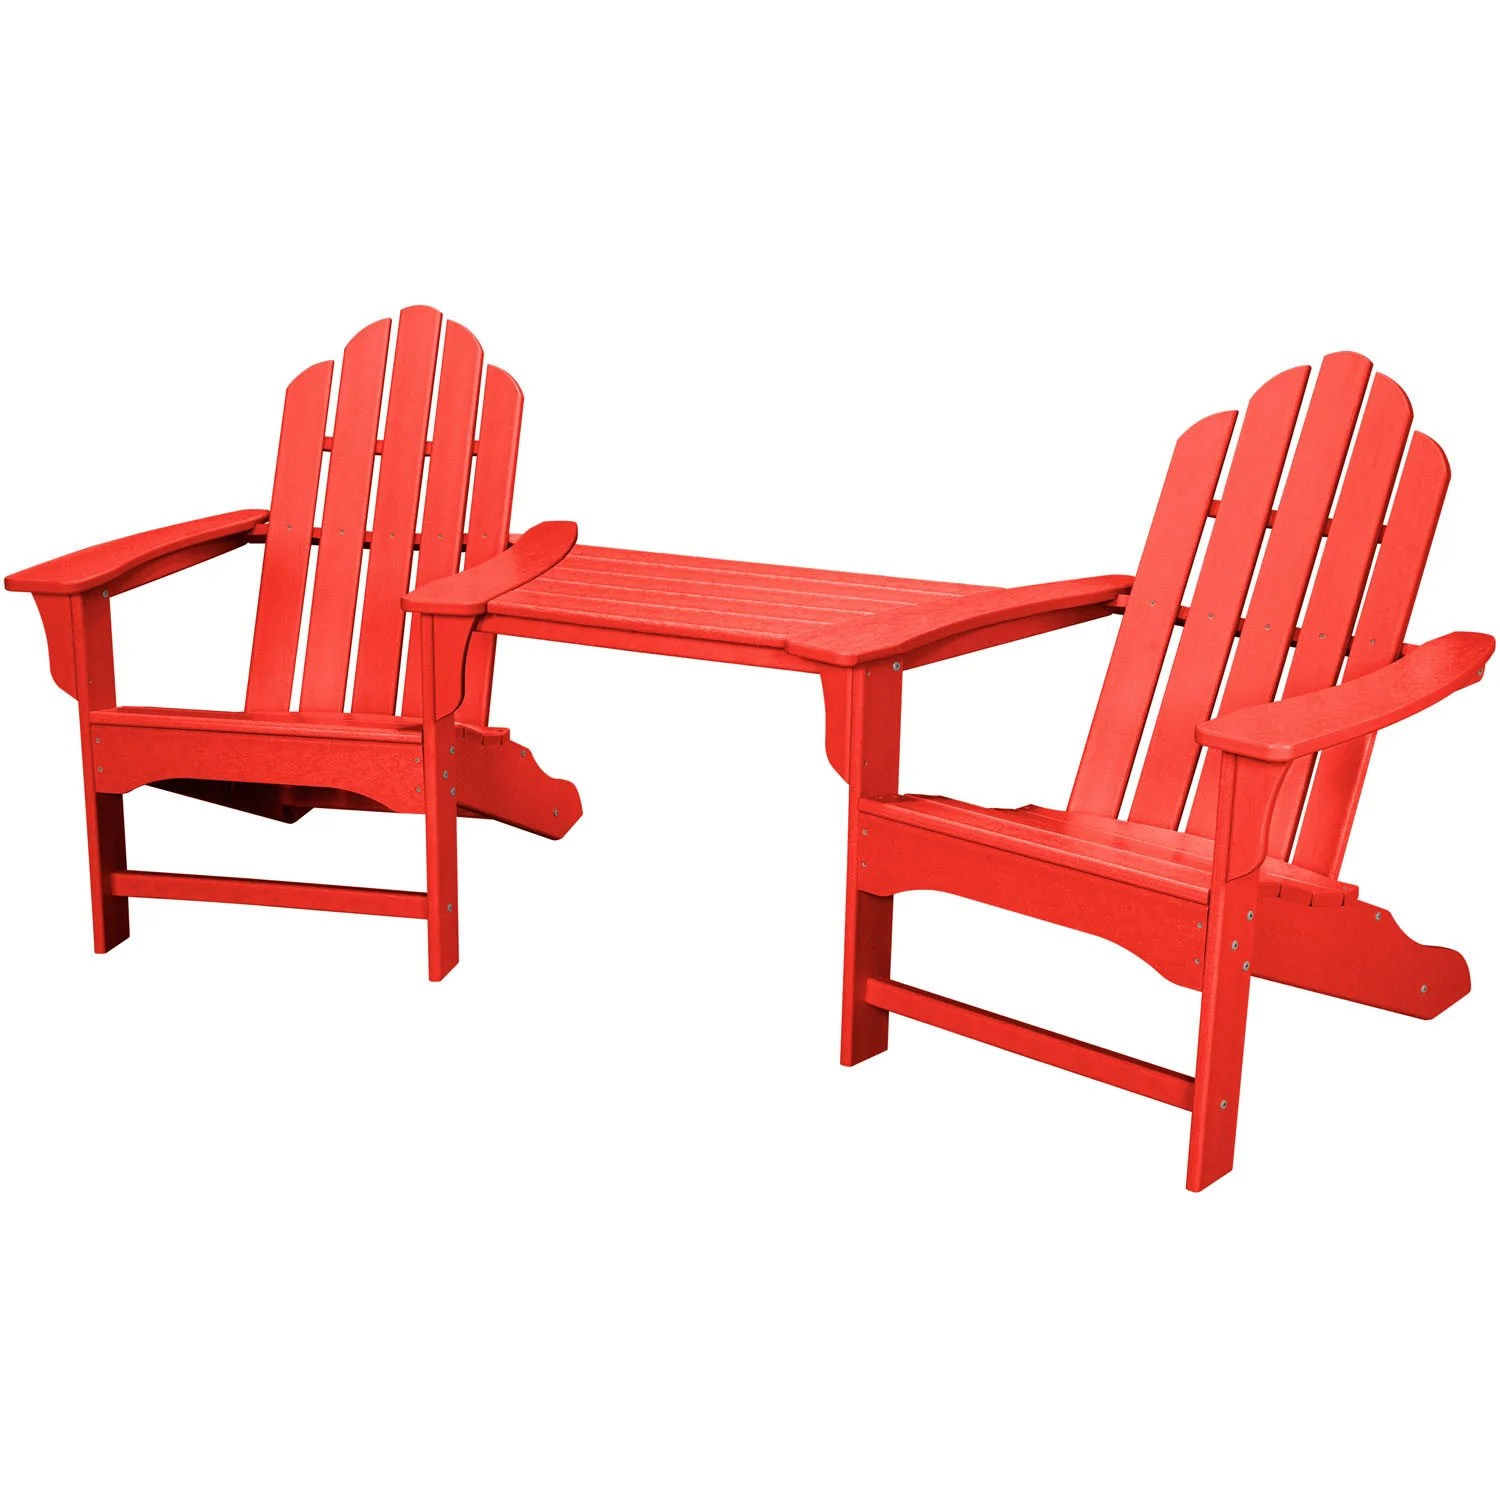 Red Adirondack Chairs Hanover All Weather Rio 3pc Tete A Tete 2 Adirondack Chairs Tete A Tete Table Rio3pc Sr Sunset Red